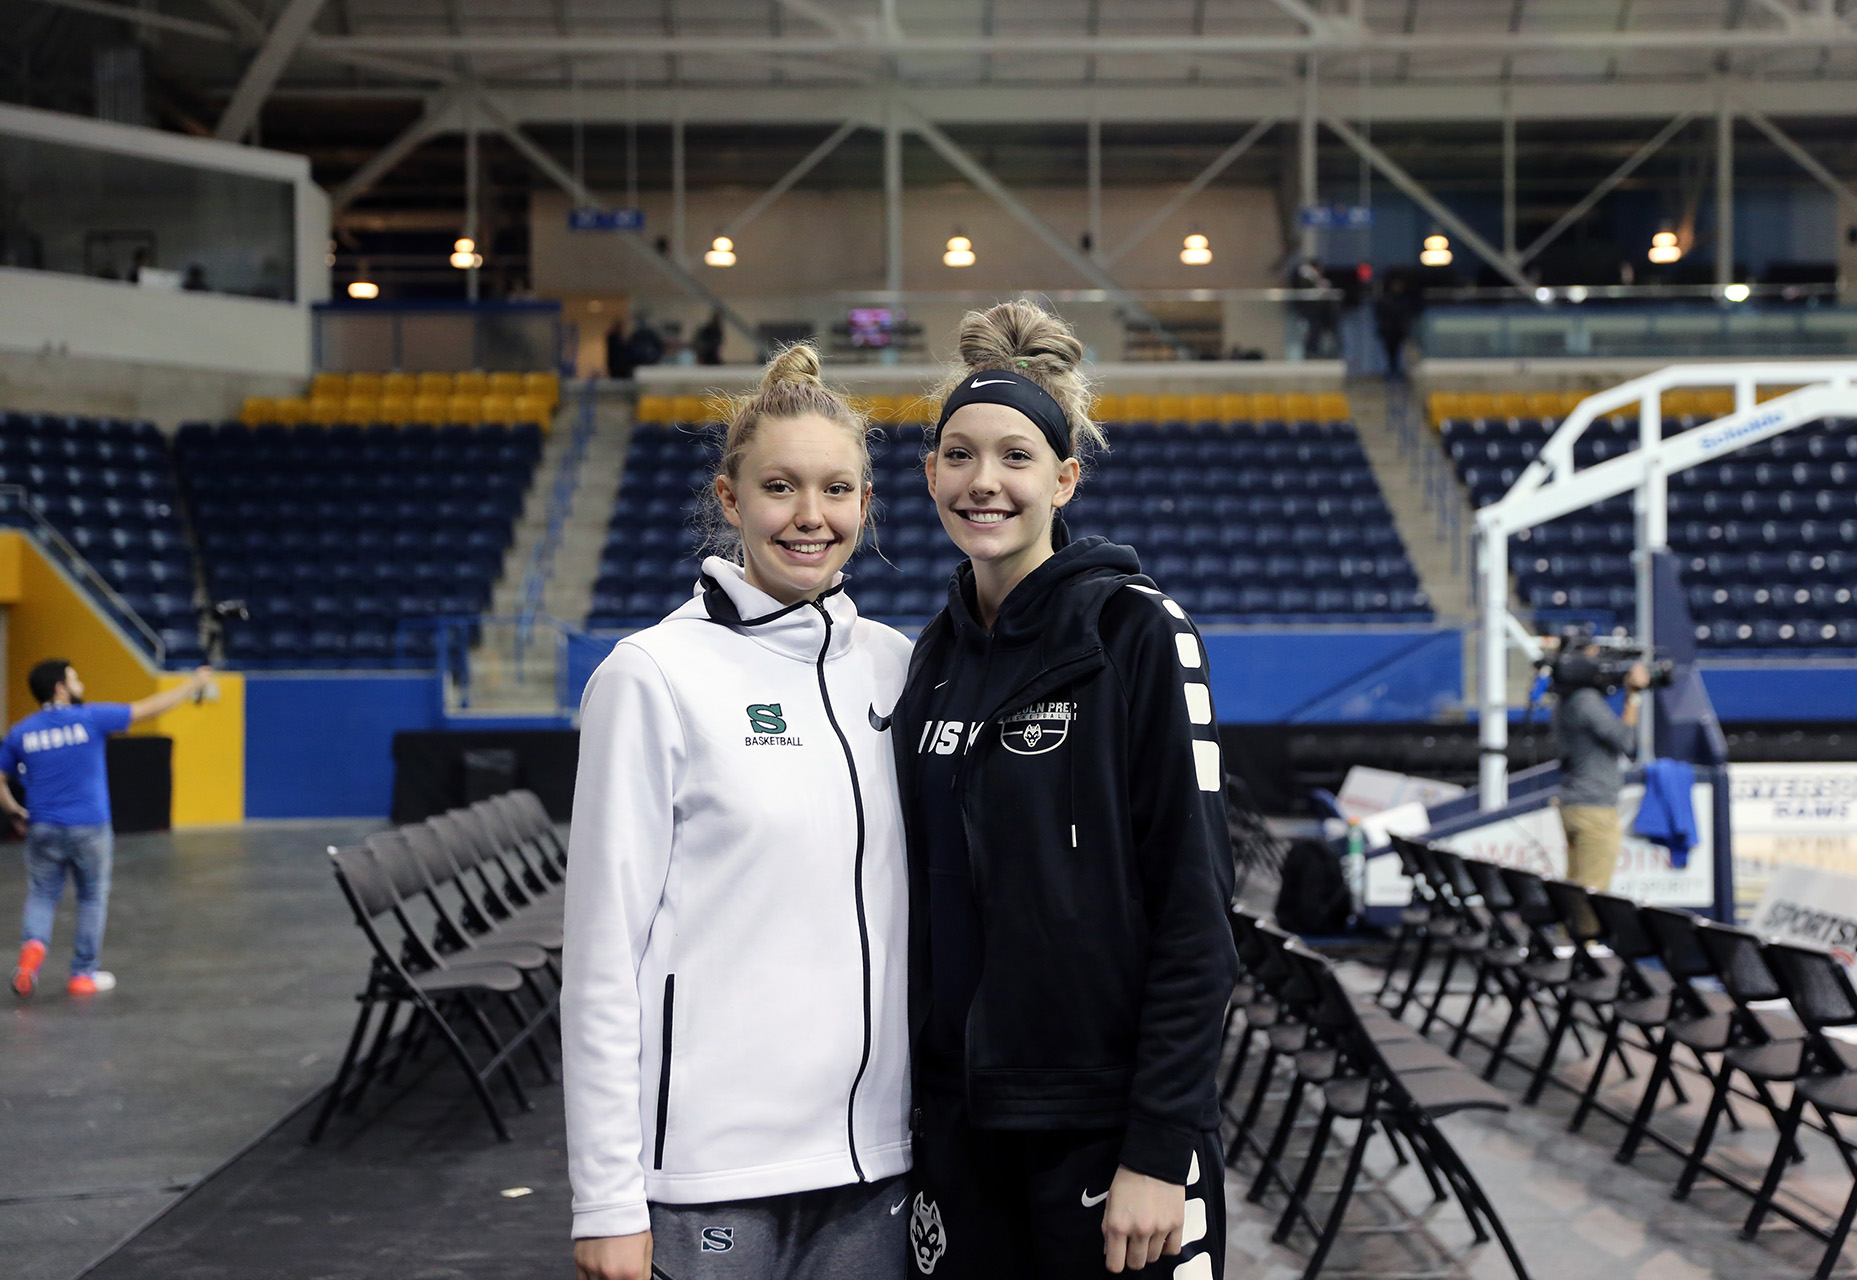 Calgary's Masikewich Sisters Continue to Chase Basketball Dreams